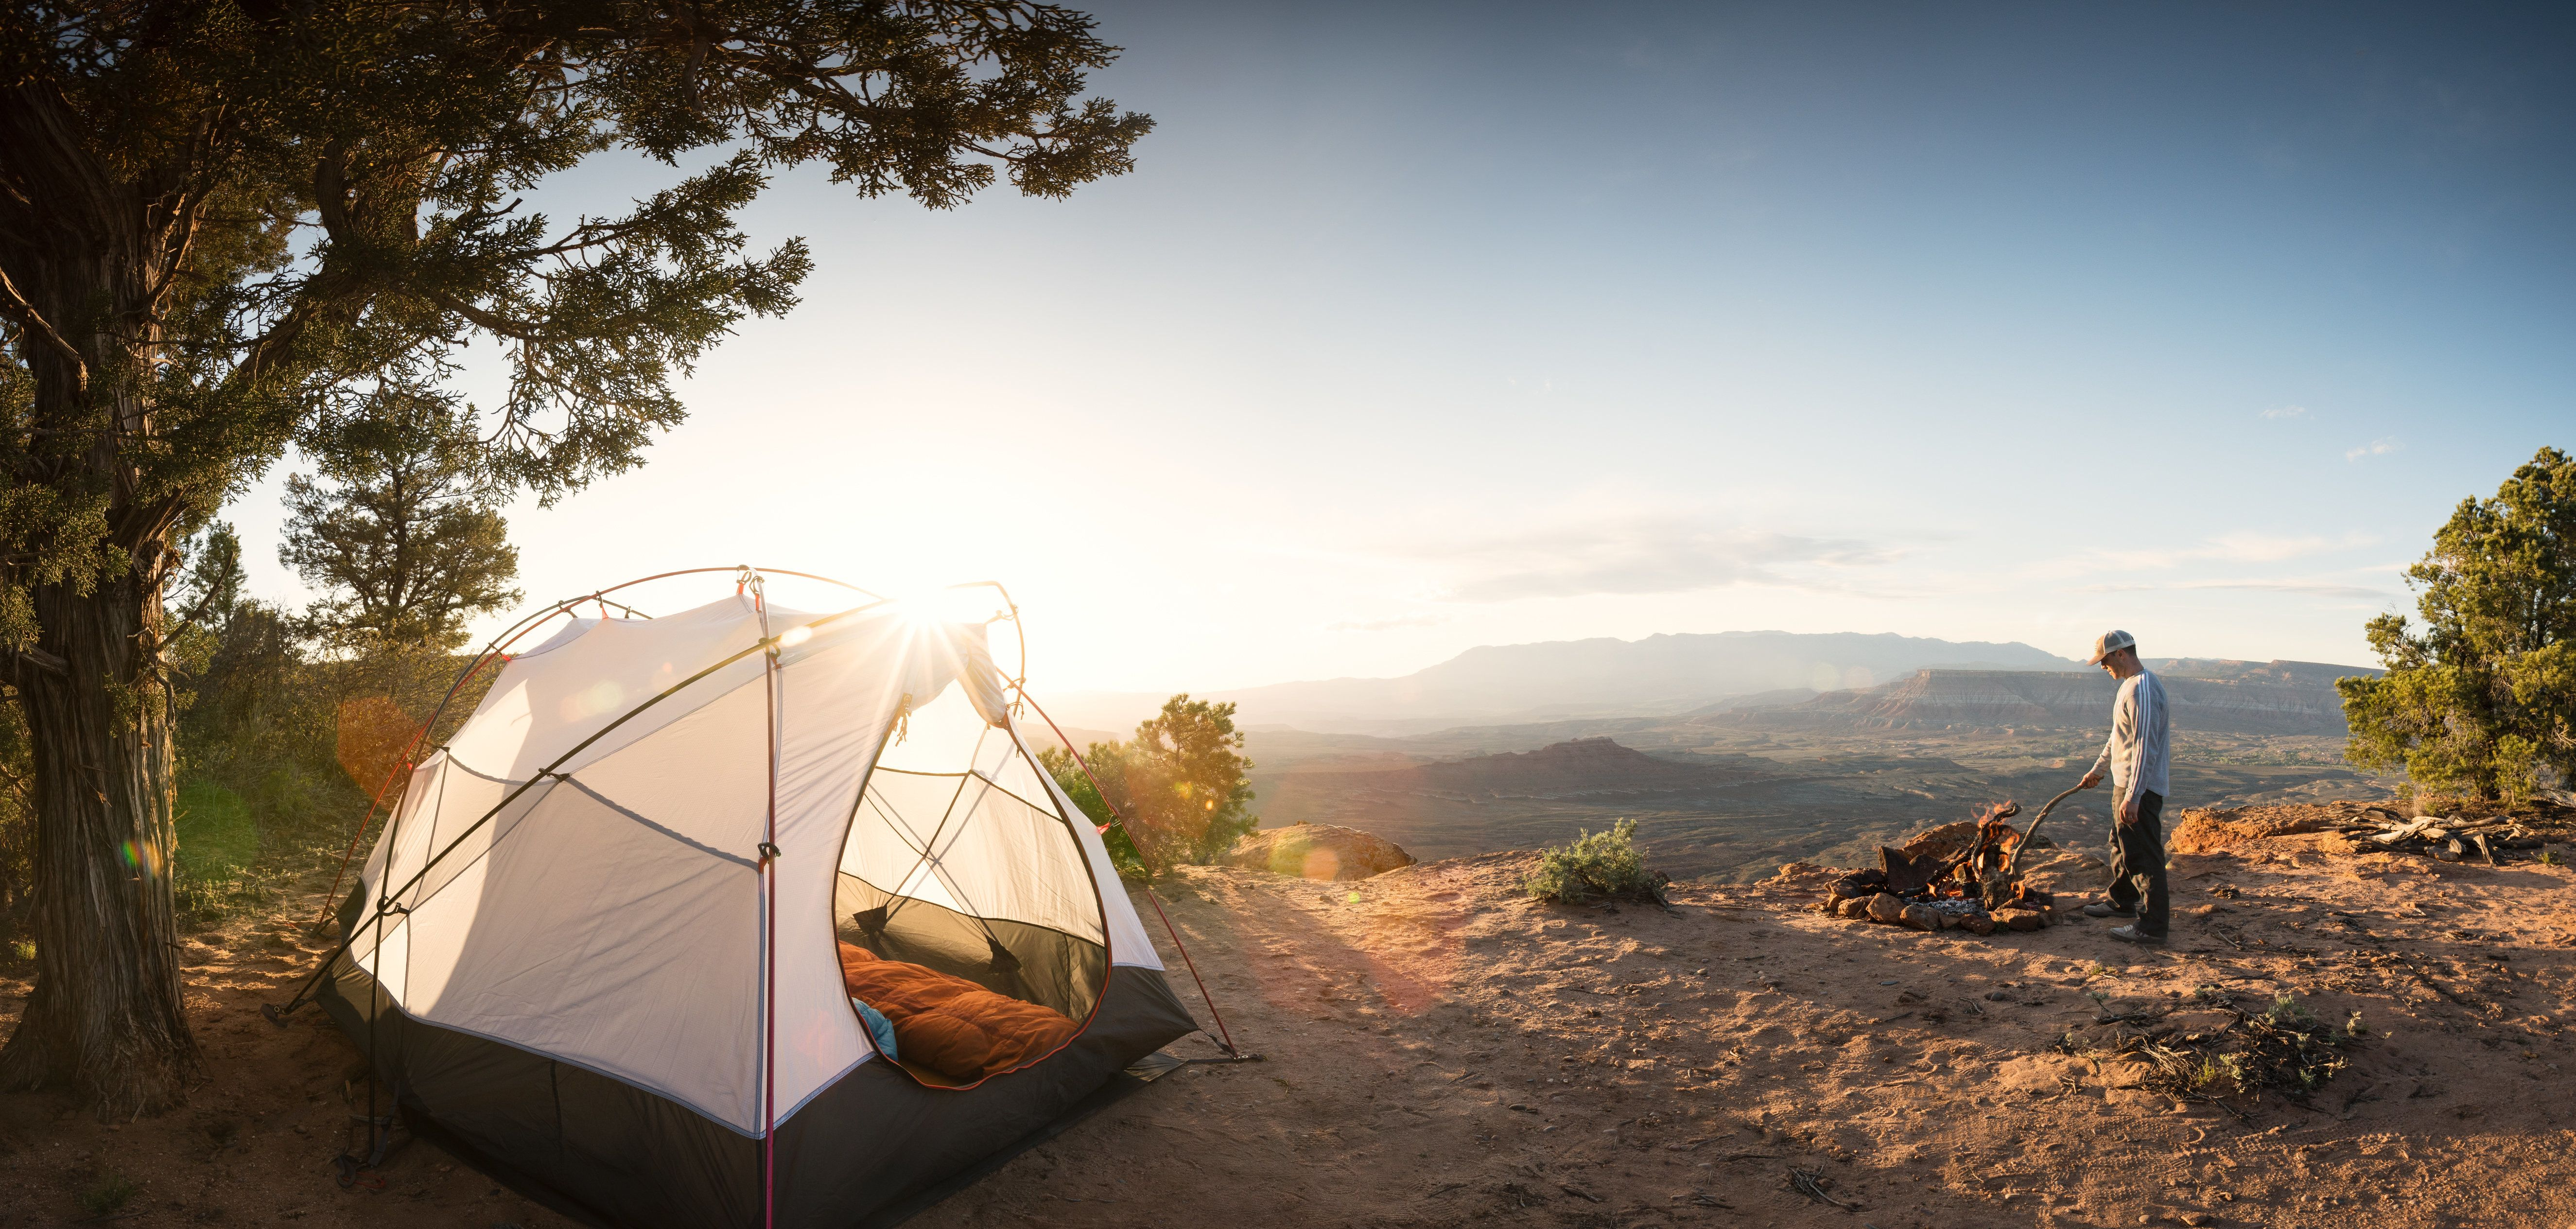 White, domed backpacking tent and down sleeping bag in foreground, where a solitary man wearing teeshirt, long pants and baseball cap stands near his campfire, stirring the coals with a stick. The campsite overlooks a broad desert valley. A pinion pine offers shelter for the tent. Anything could happen on this day primed for adventure.